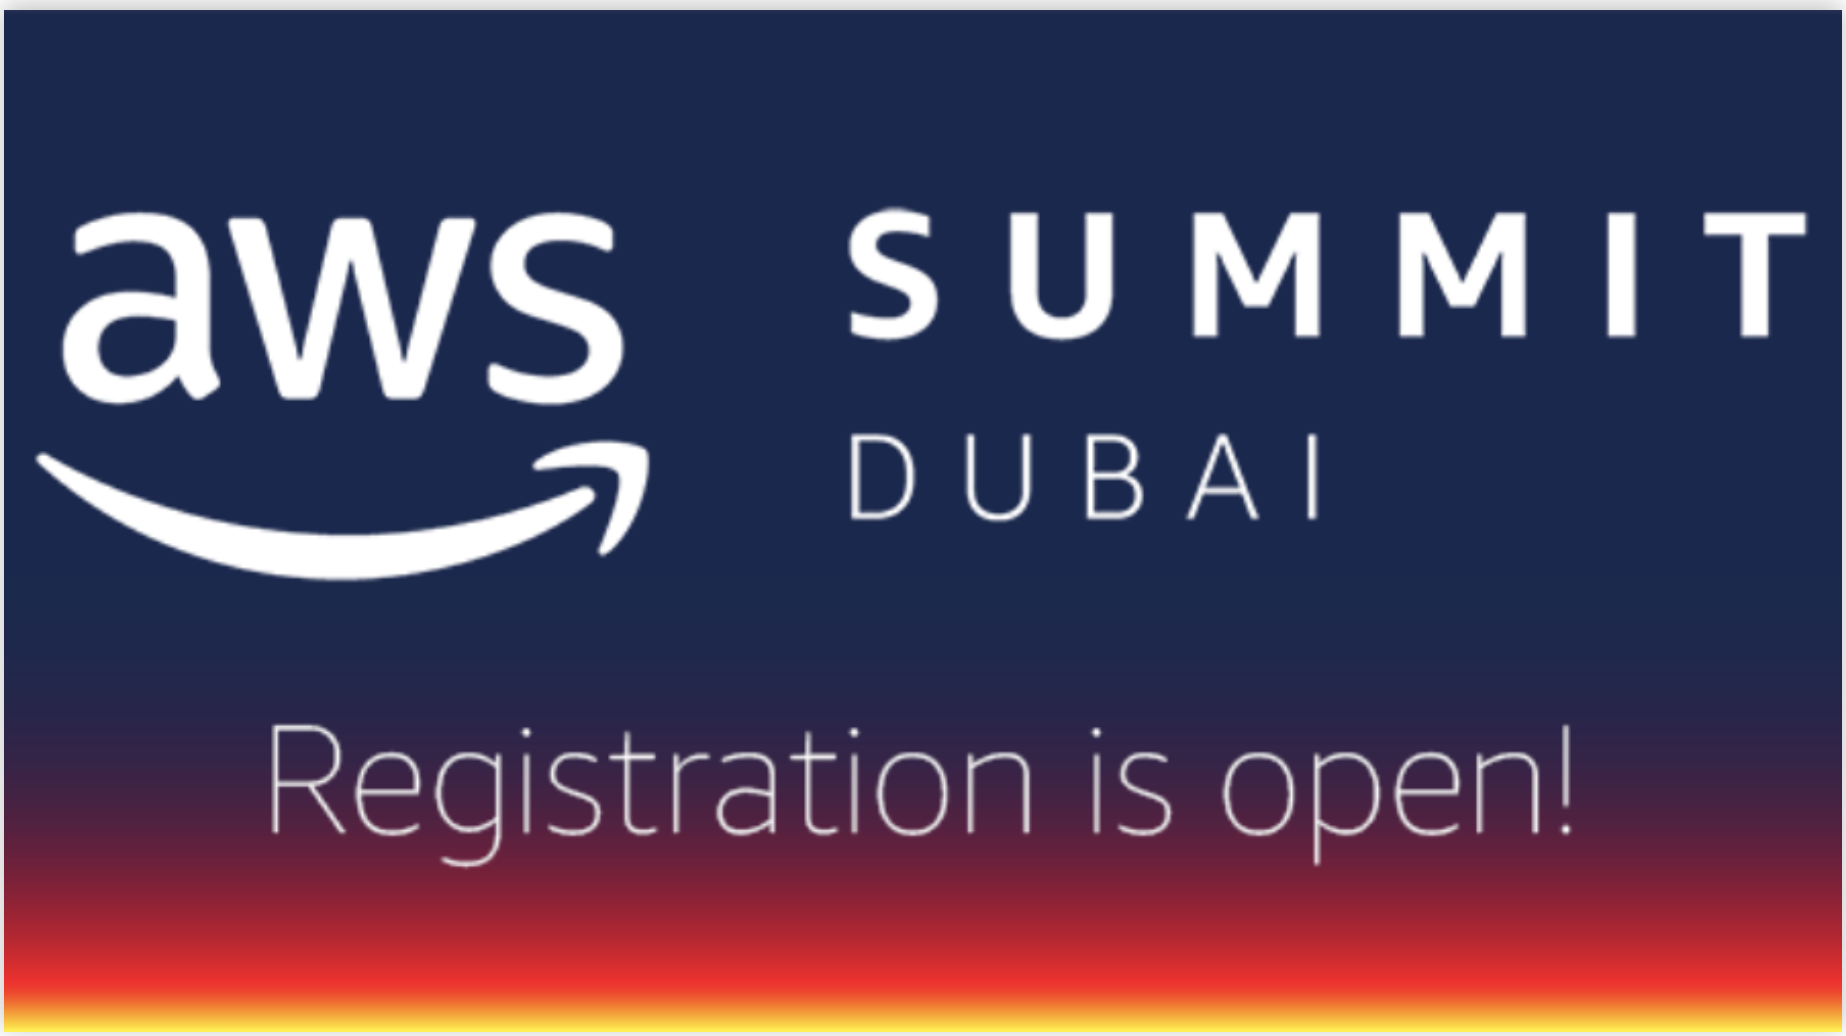 Are you coming to the AWS Summit Dubai?